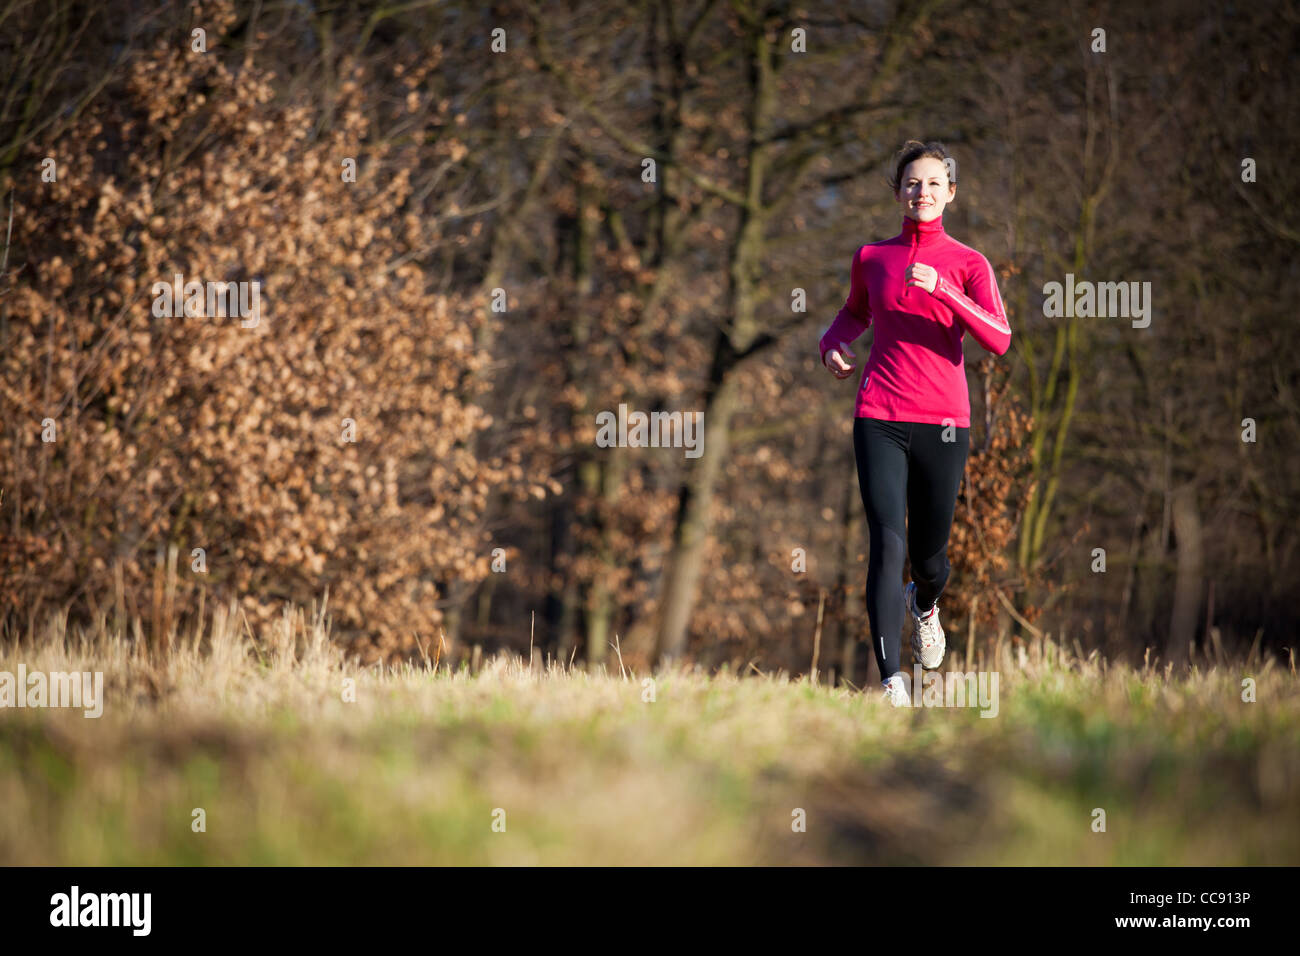 Young woman running outdoors on a lovely sunny winter/fall day (motion blurred image) - Stock Image